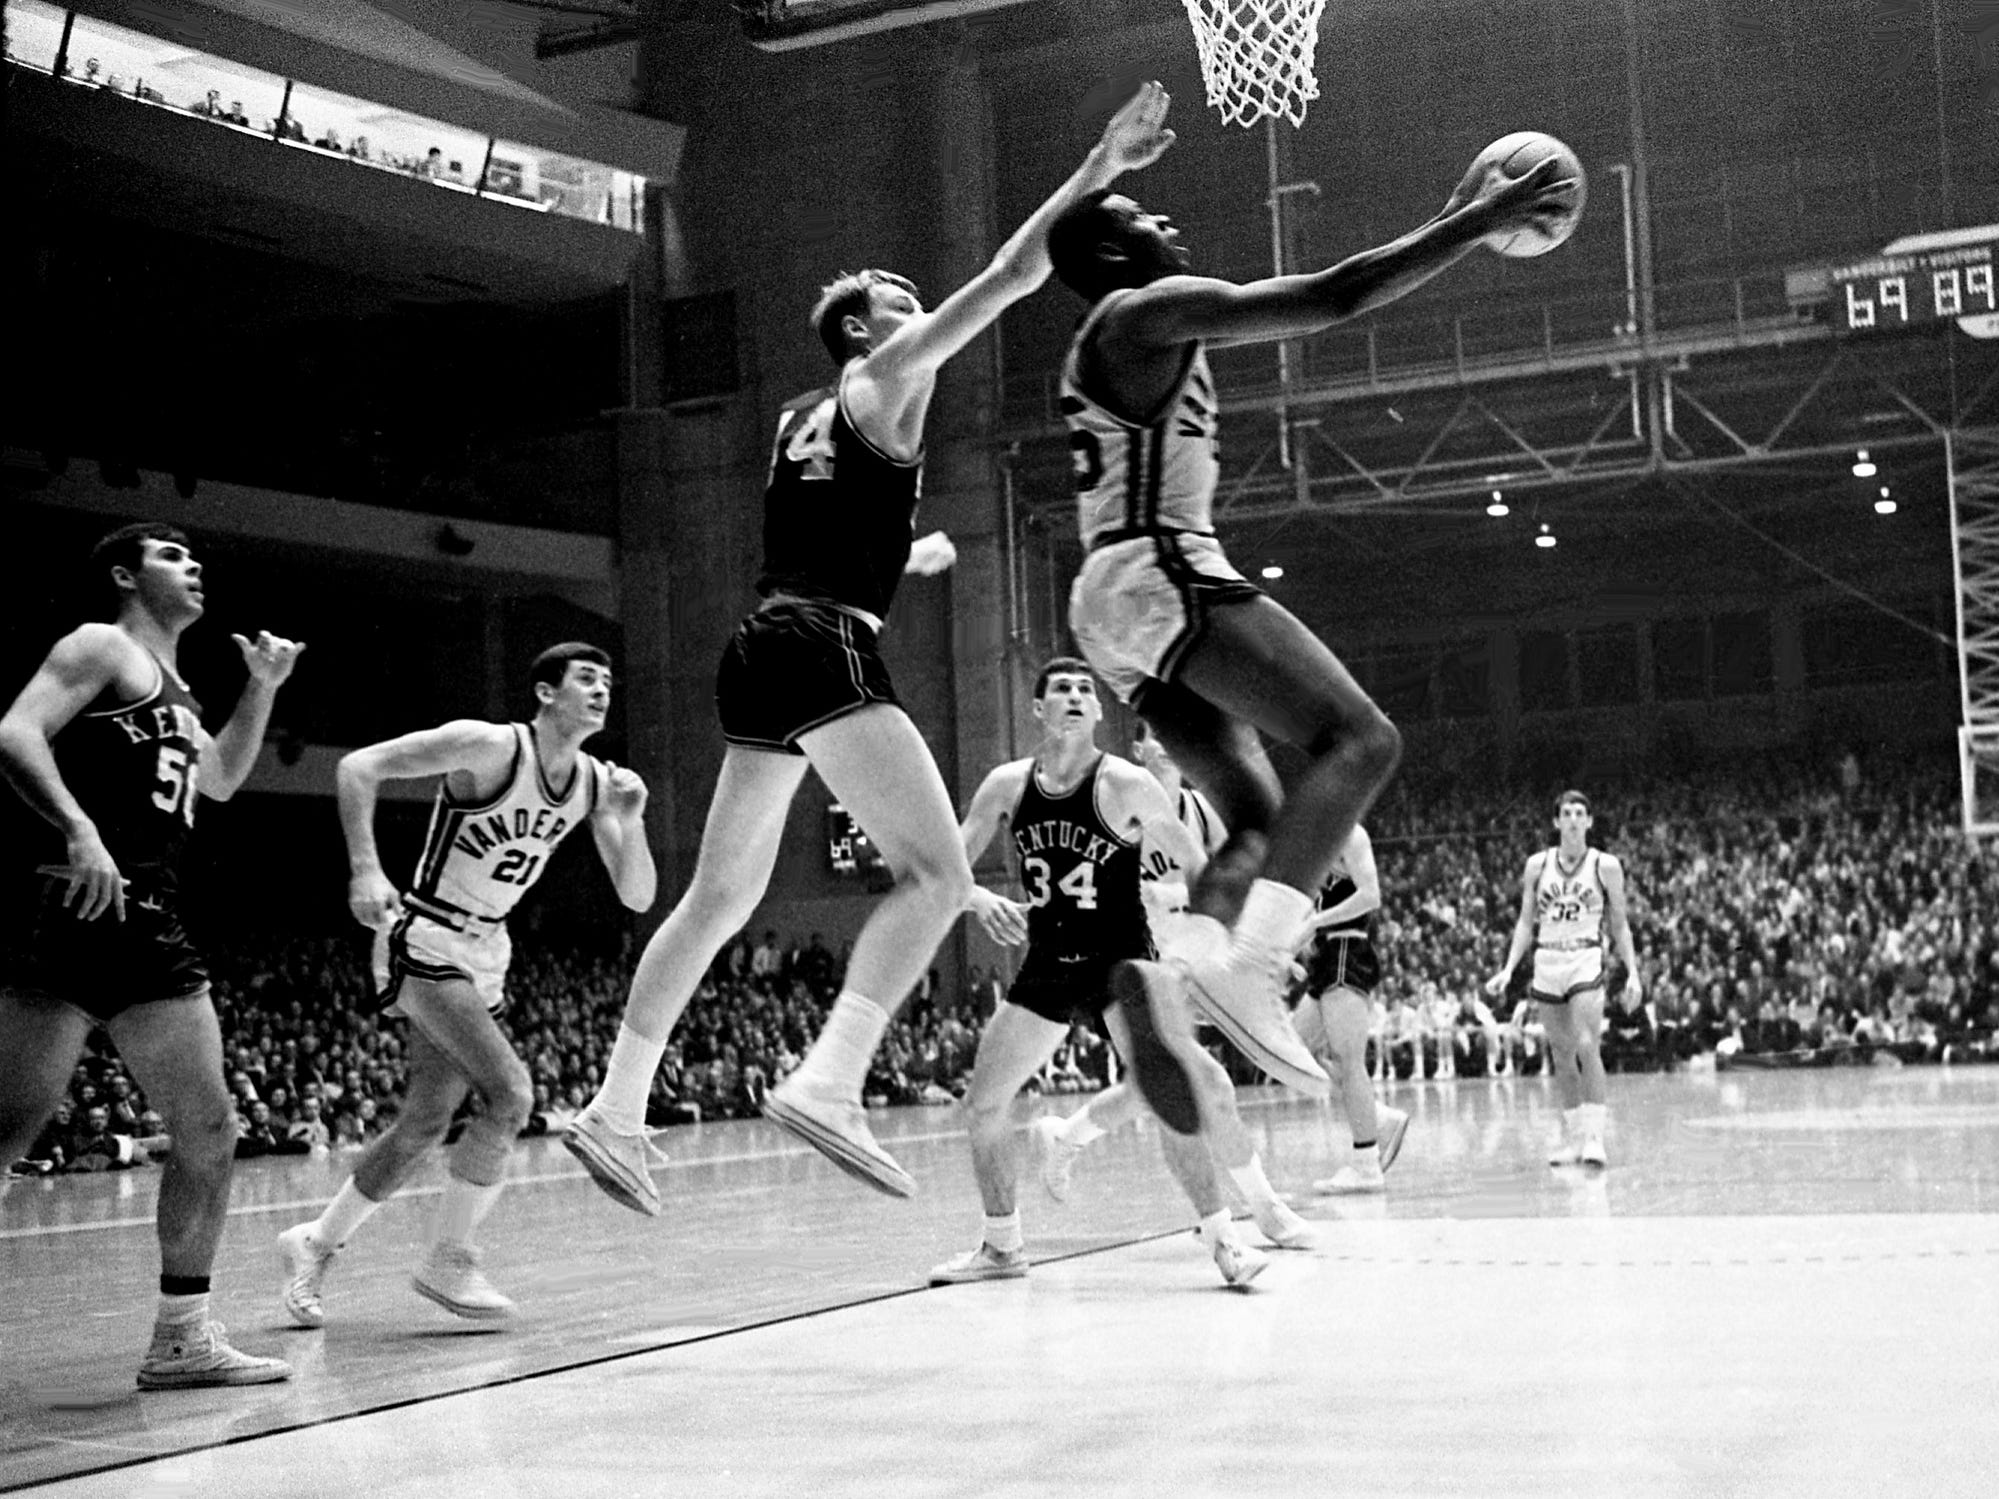 Vanderbilt sophomore Perry Wallace (25) makes a move for a layup as Kentucky sophomore Dan Issel (44) defends. But it was Kentucky all the way in a 94-78 victory over the Commodores before 11,500 at Memorial Gym on Jan. 6, 1968.